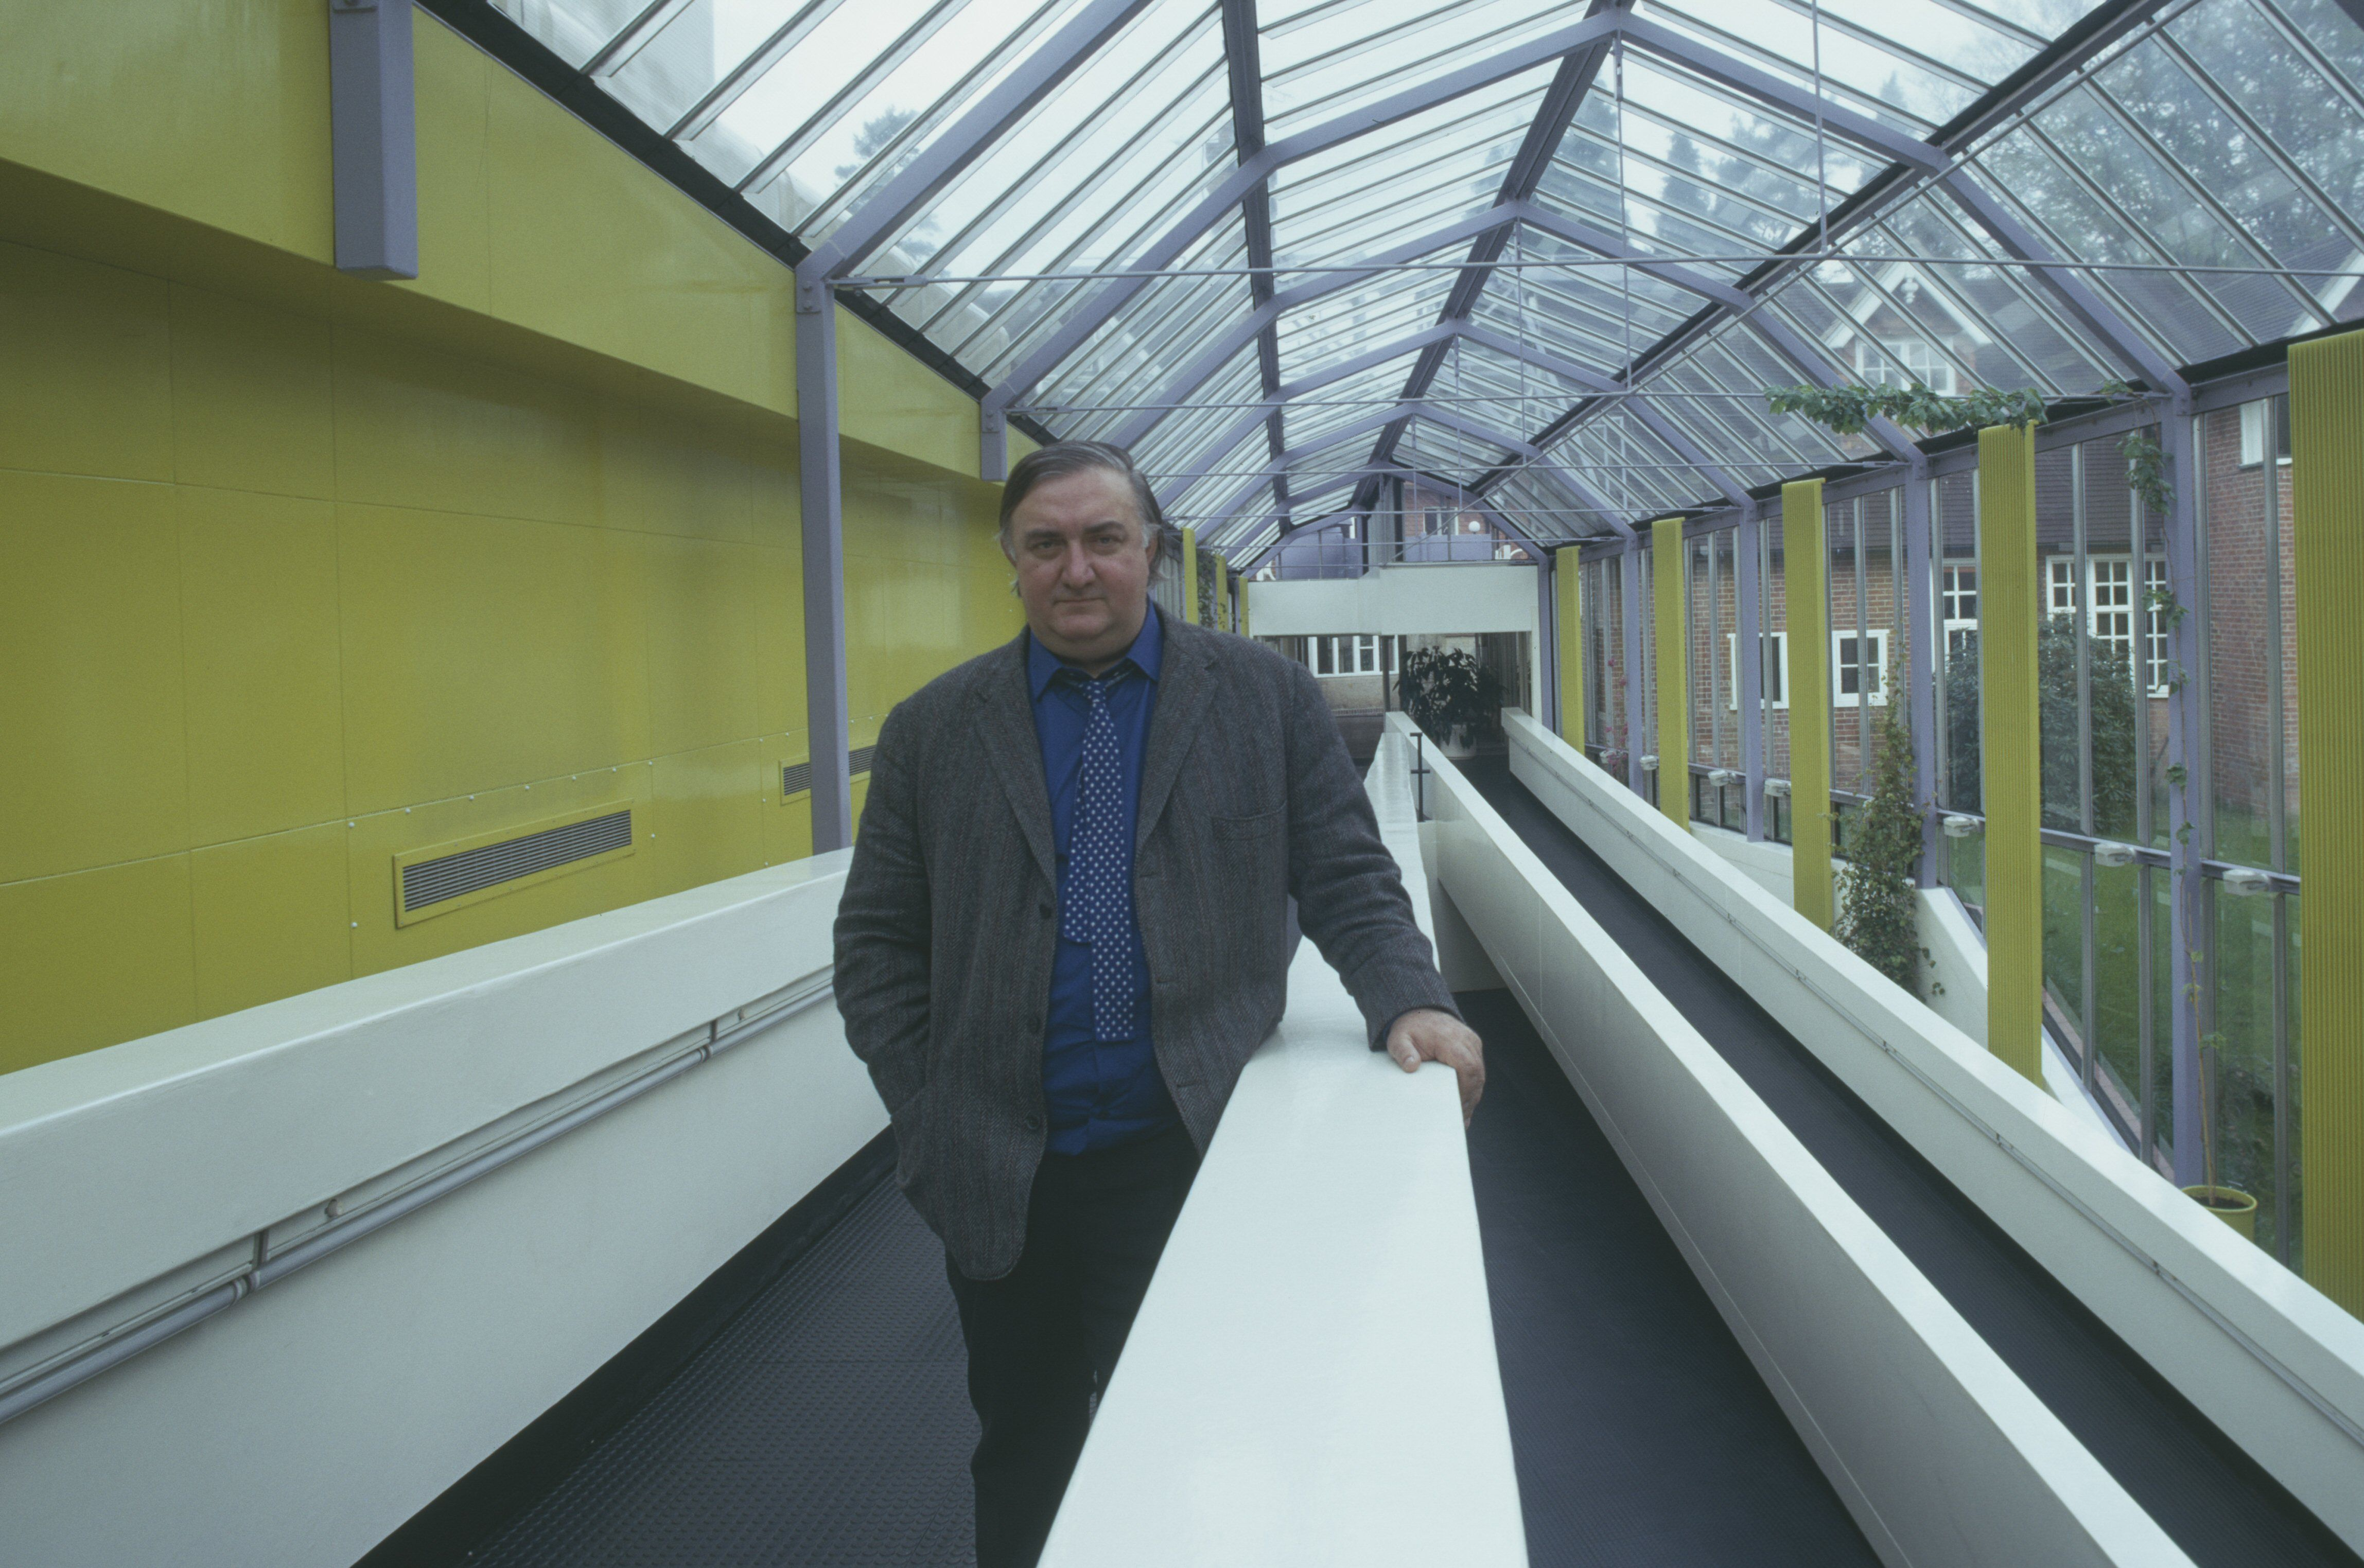 stocky, white man standing in glass-enclosed corridor